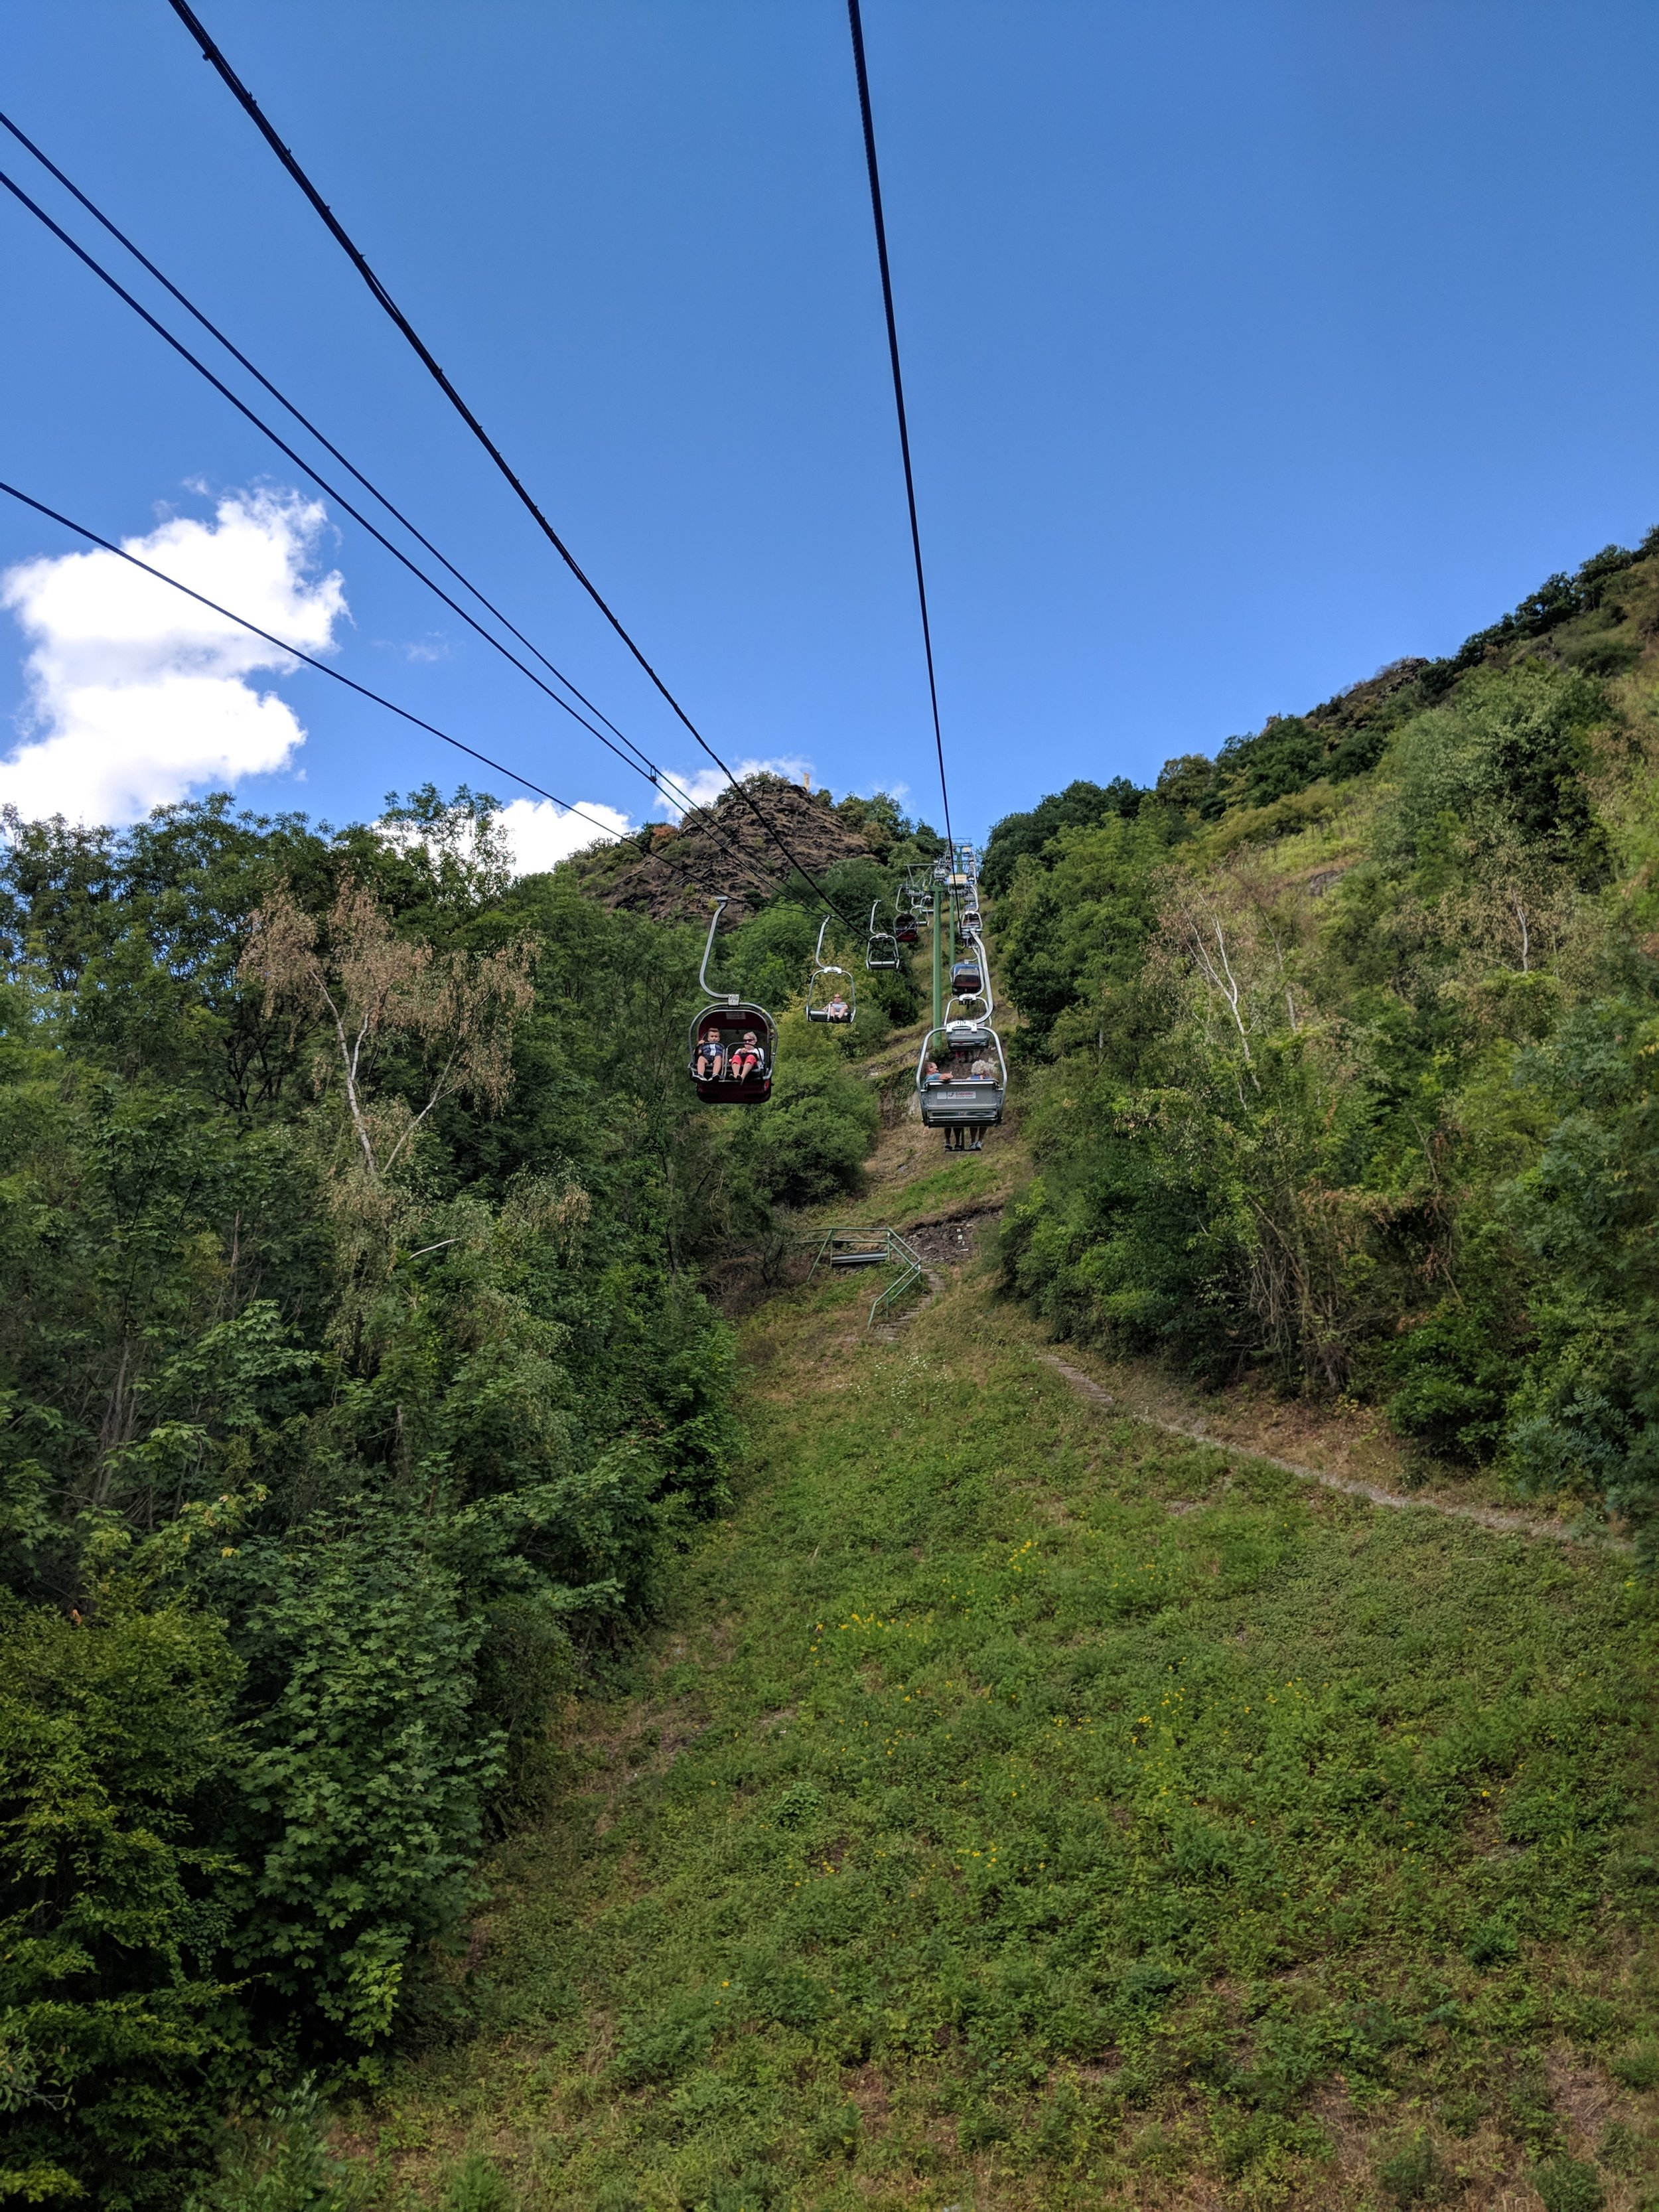 Riding up the Sesselbahn